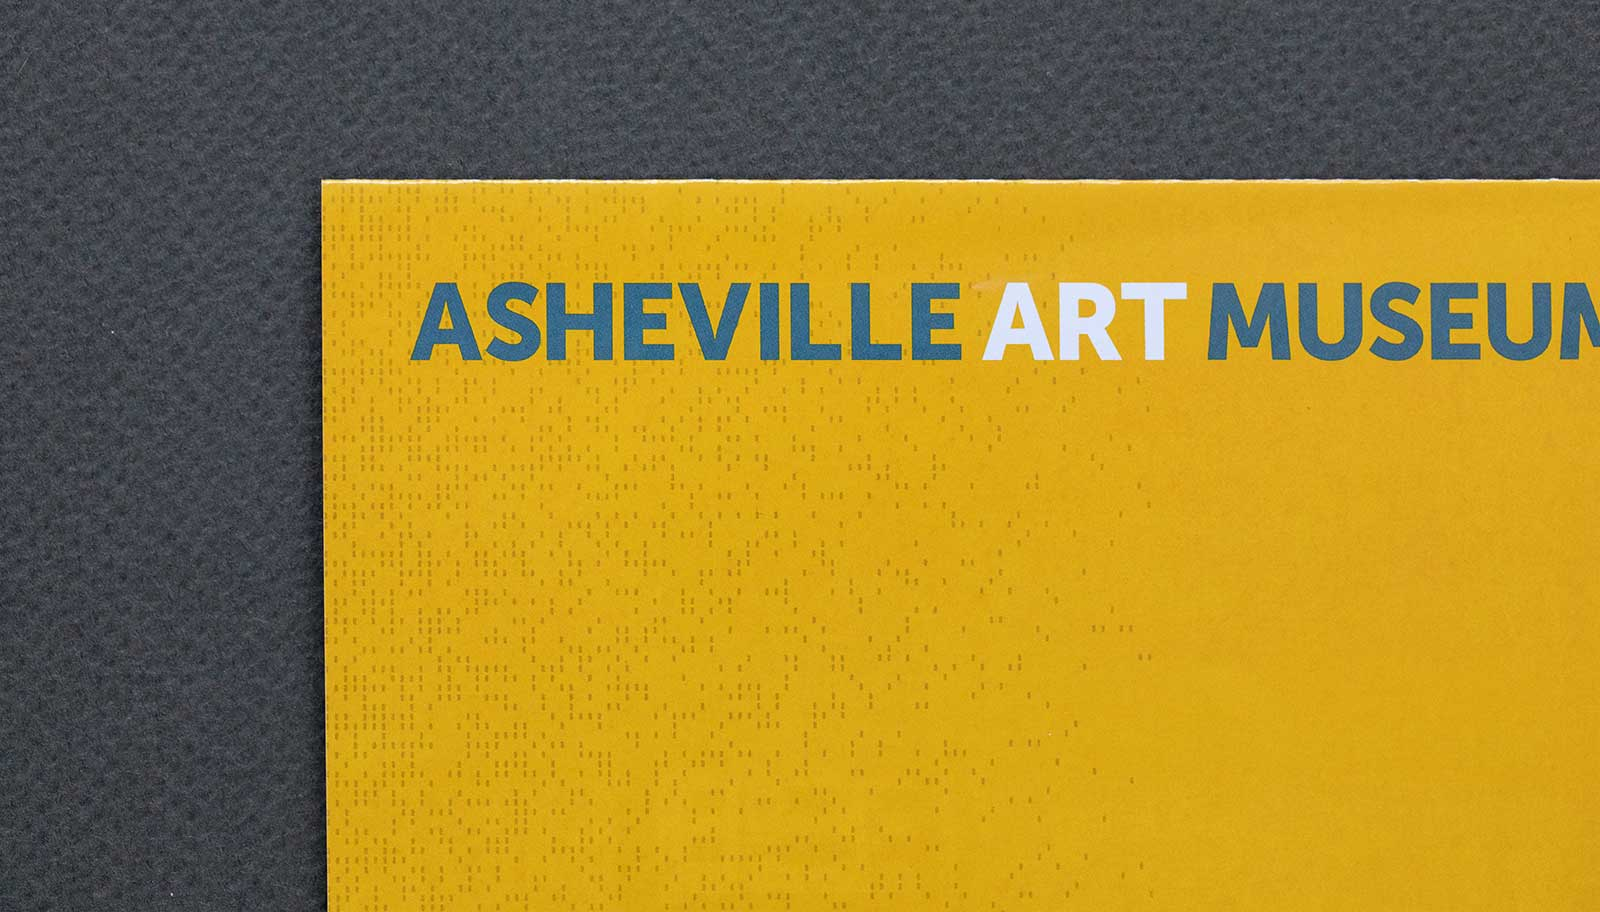 Tightly cropped view of New Membership brochure for the Asheville Art Museum shows close-up of vertical logo and perf pattern on gold background.